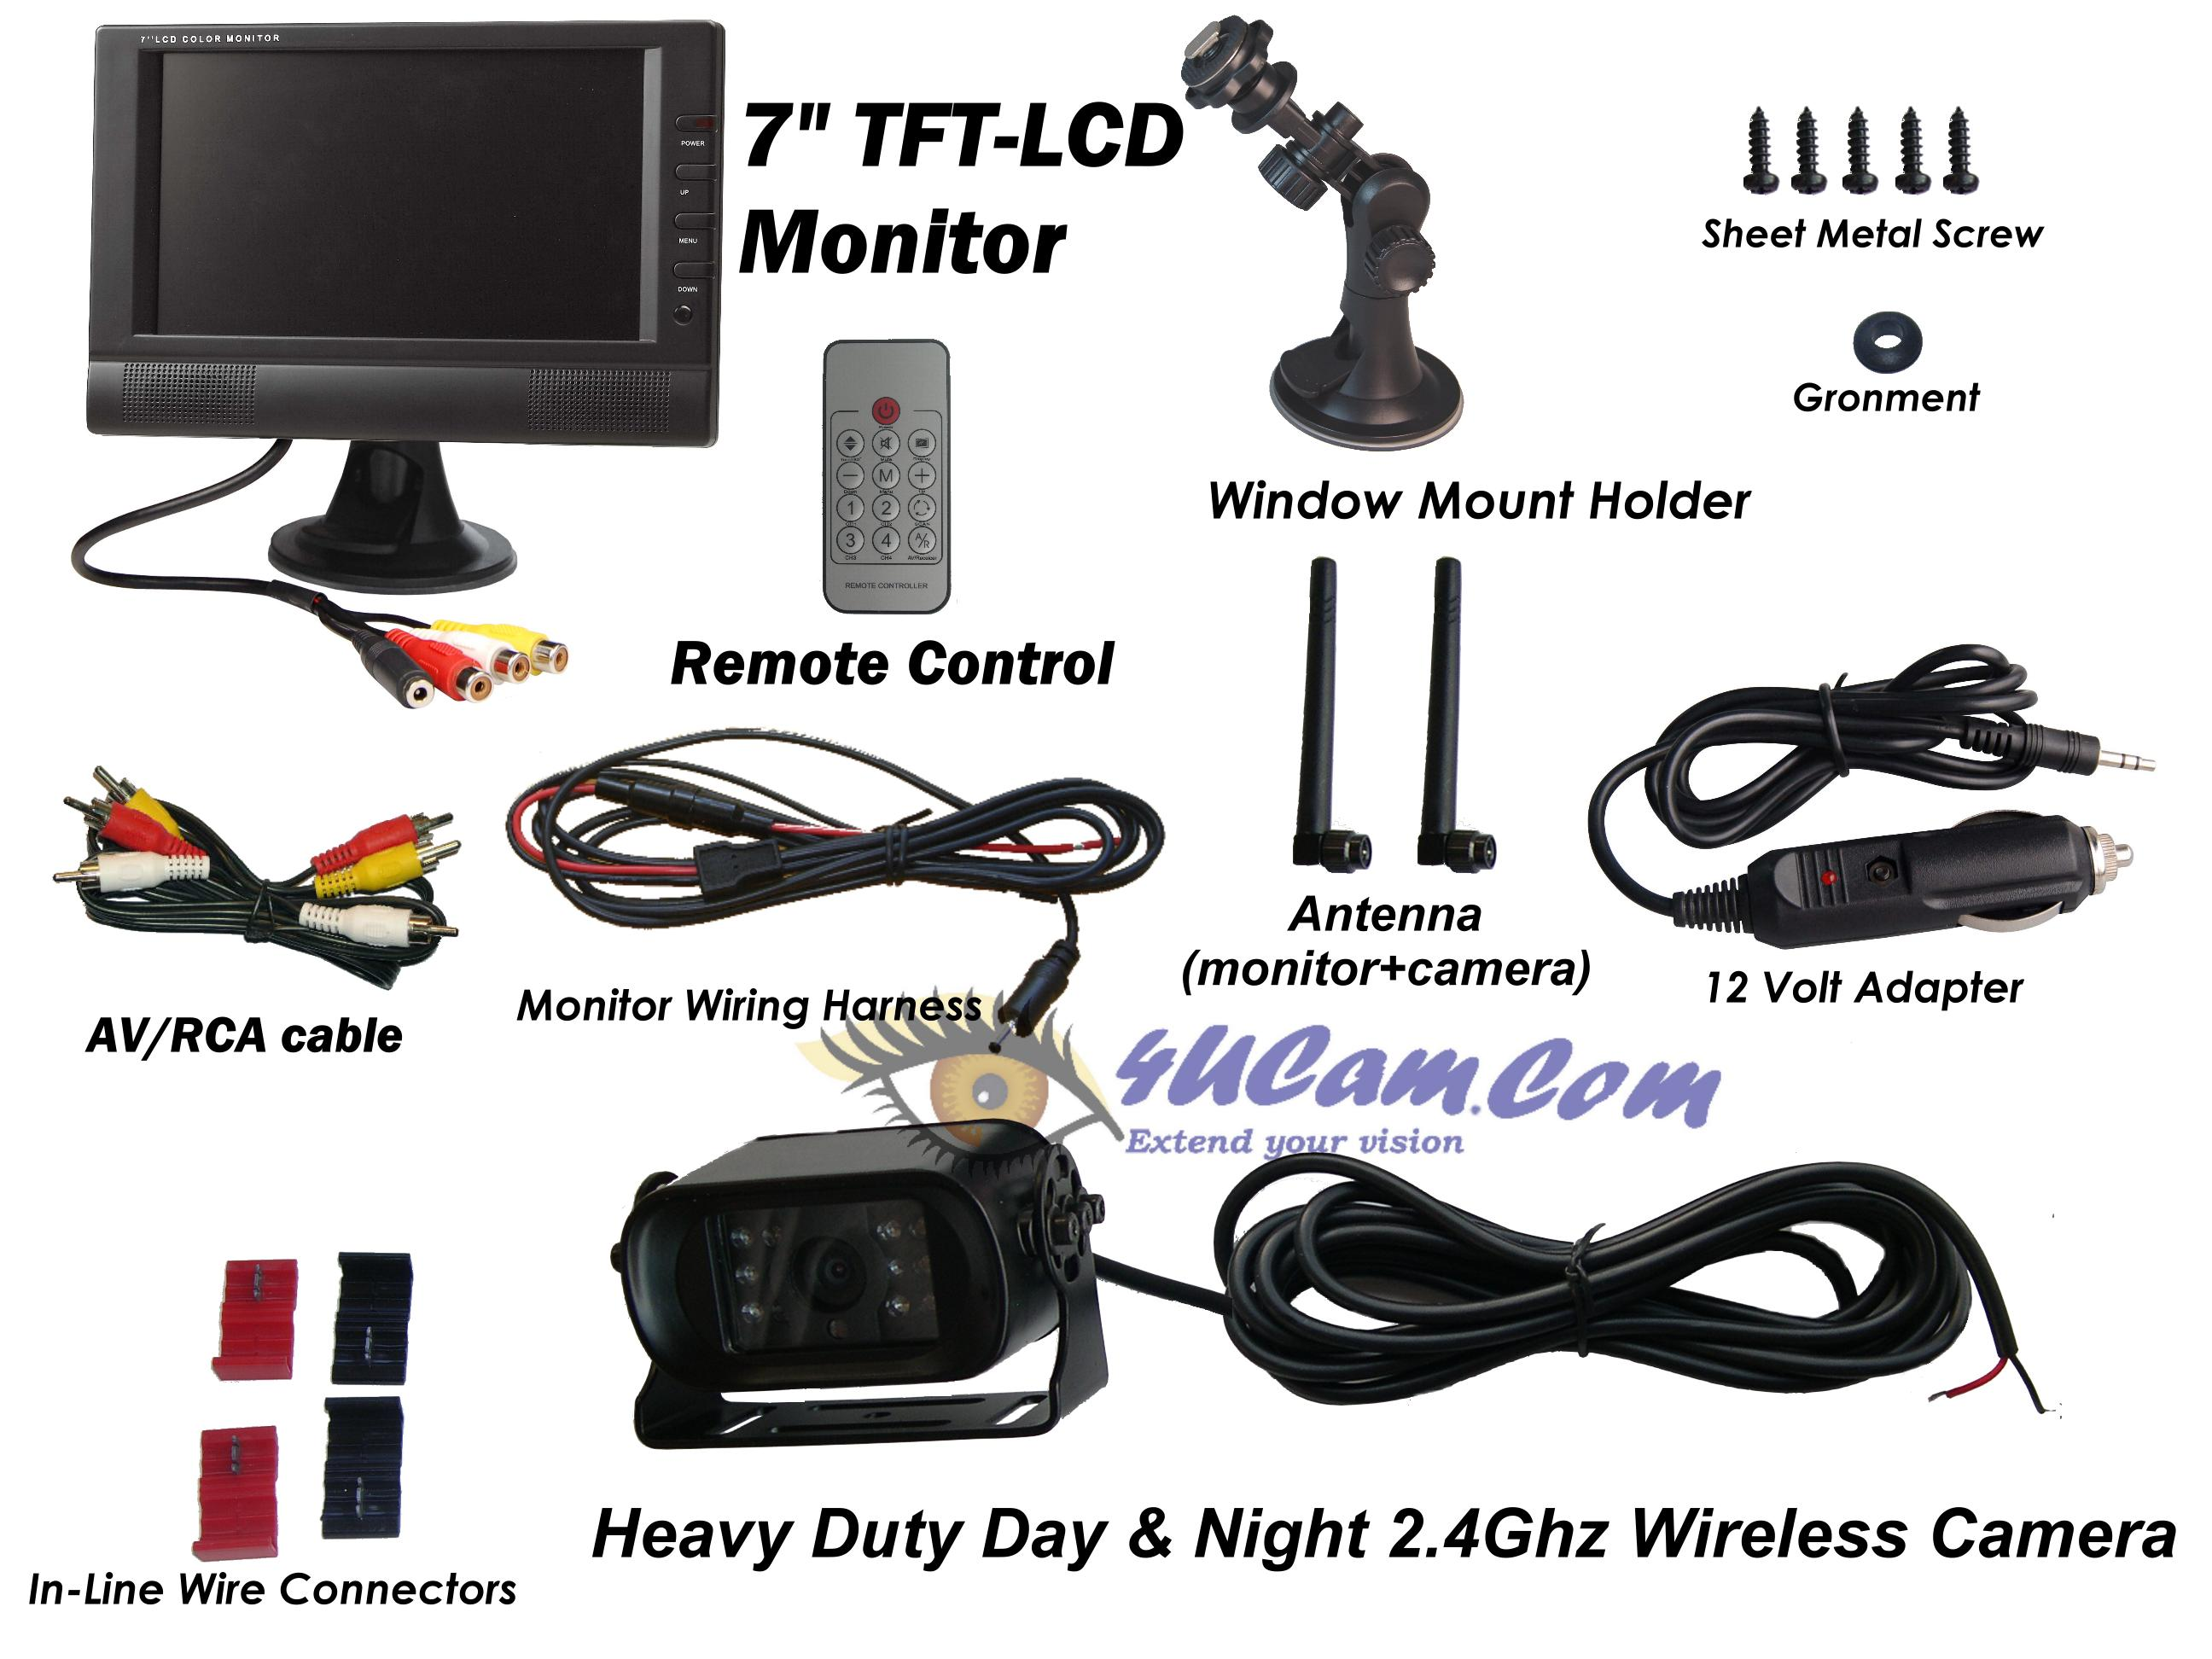 7 tft lcd monitor wiring diagram circuit and schematics. Black Bedroom Furniture Sets. Home Design Ideas